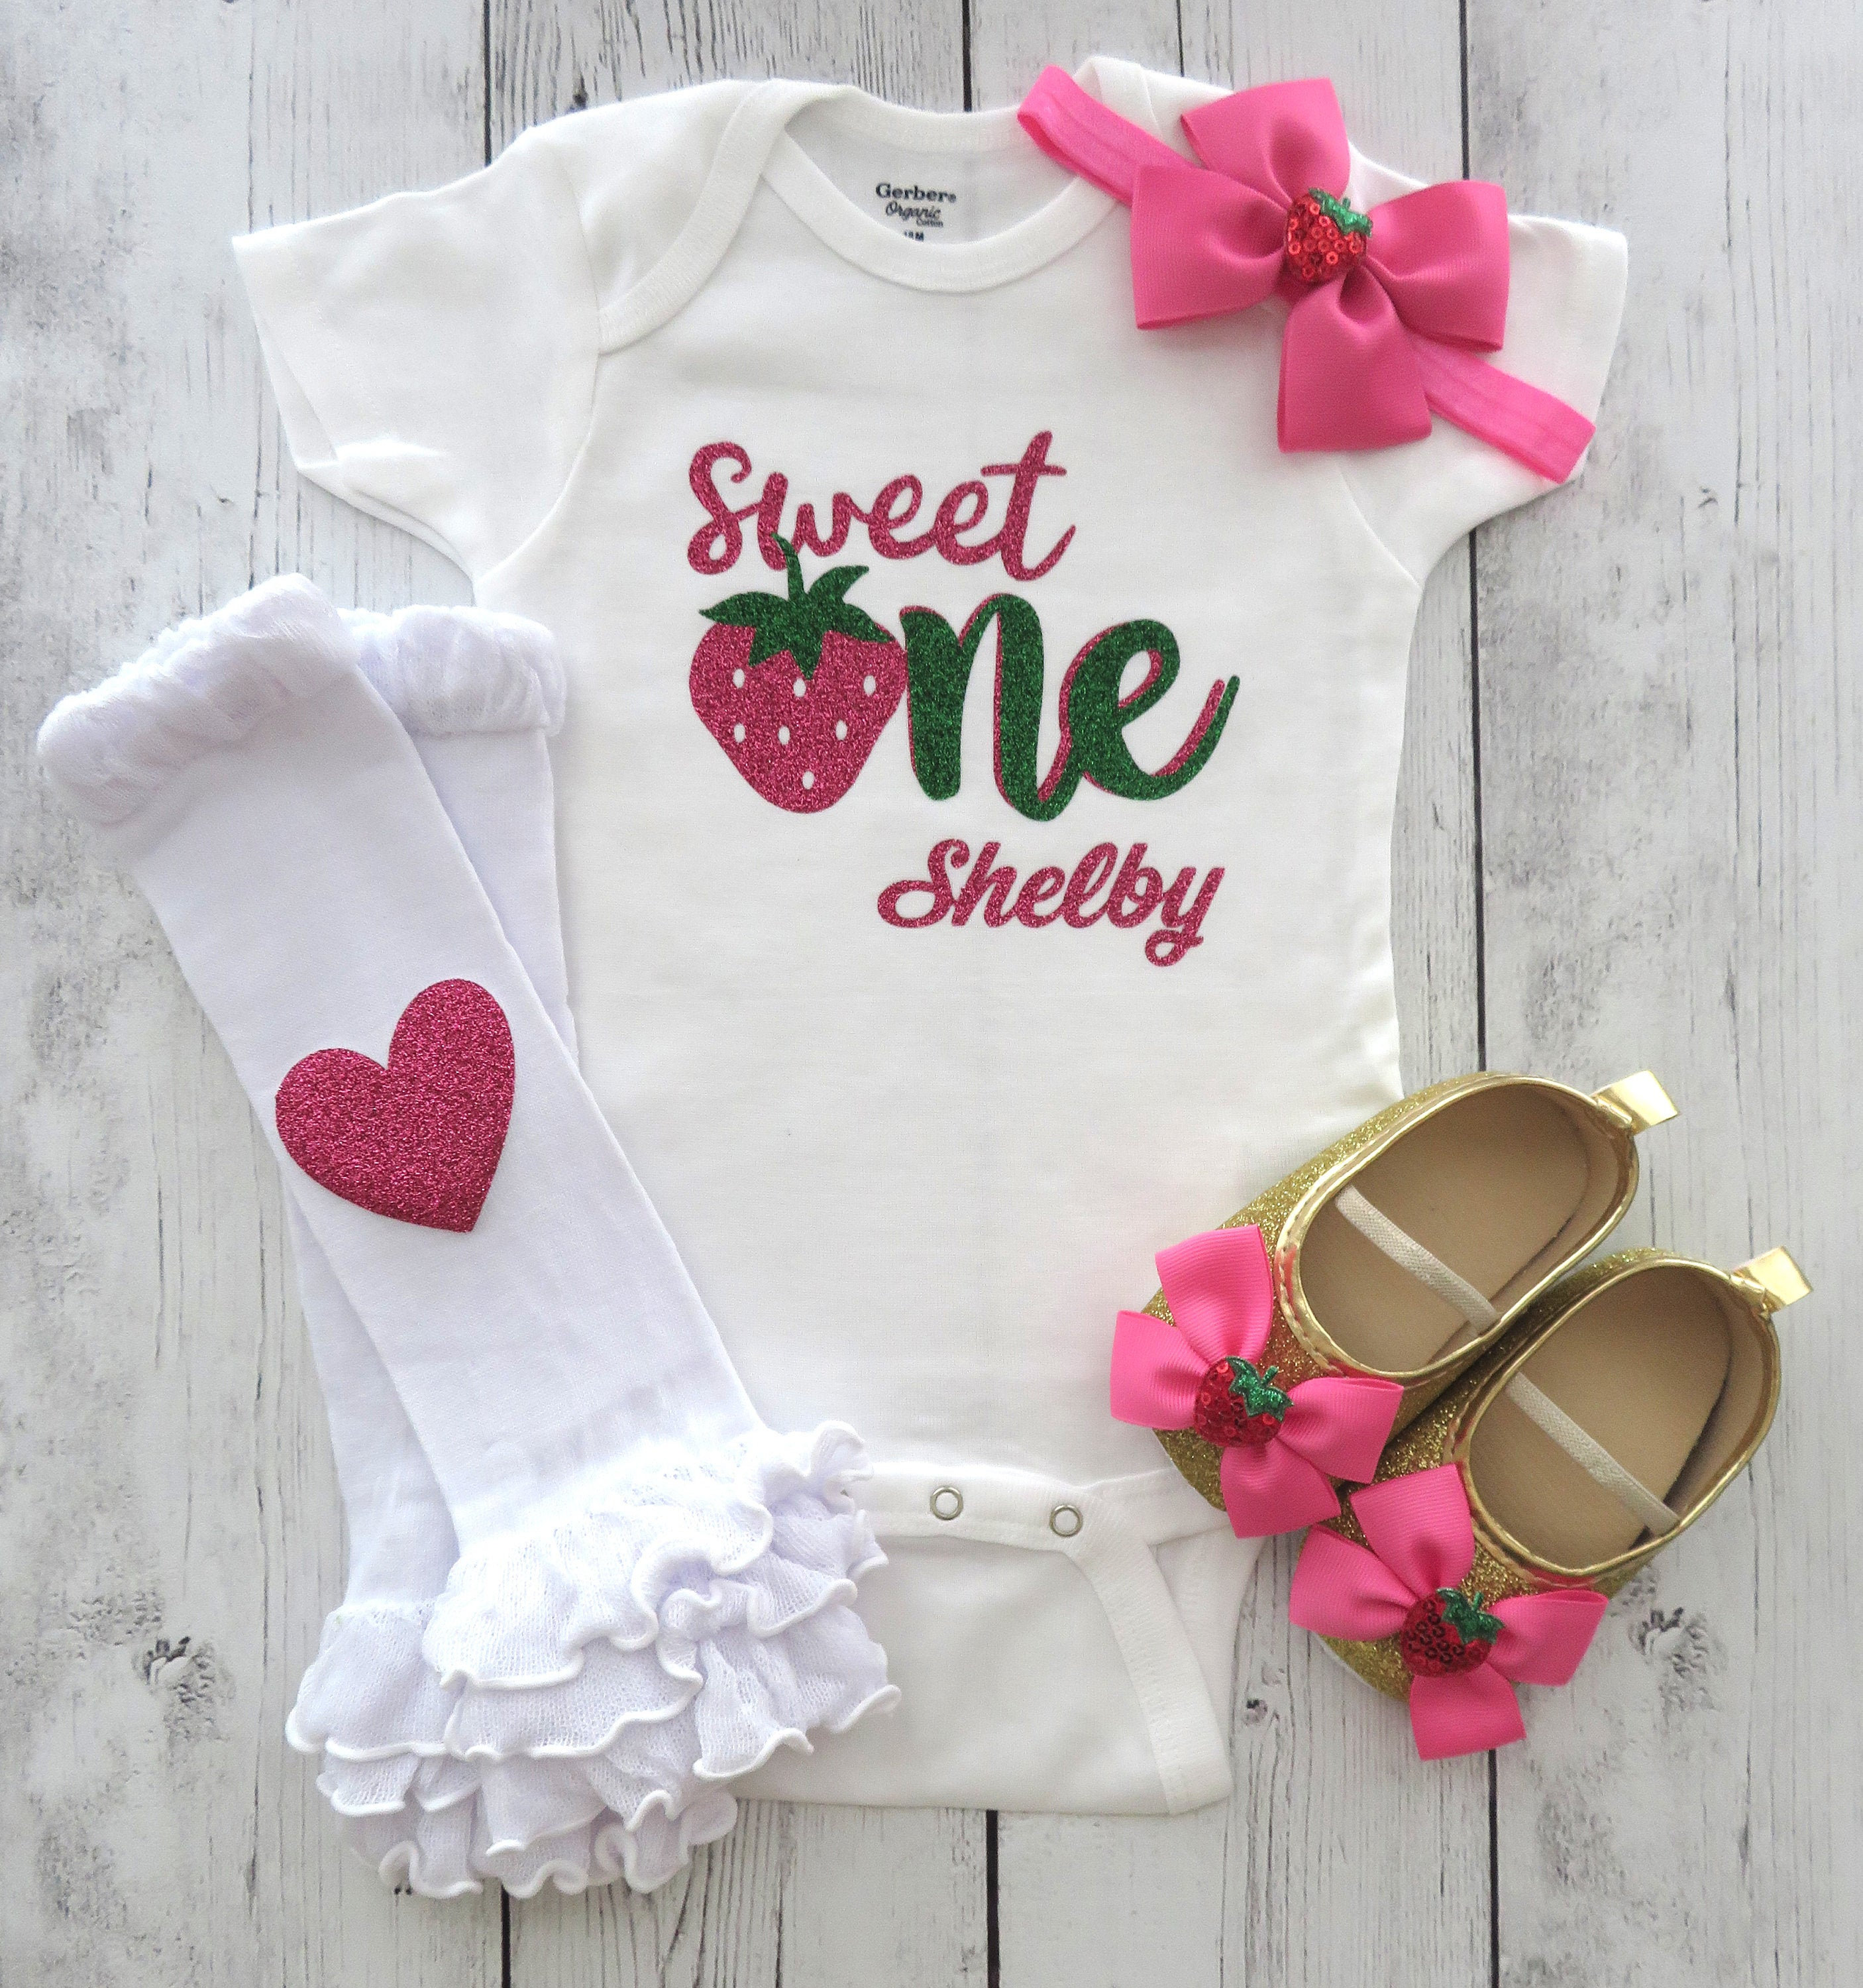 Strawberry One First Birthday Onesie - sweet one, strawberry shortcake, personalized, strawberry theme birthday, sweet one shirt girl